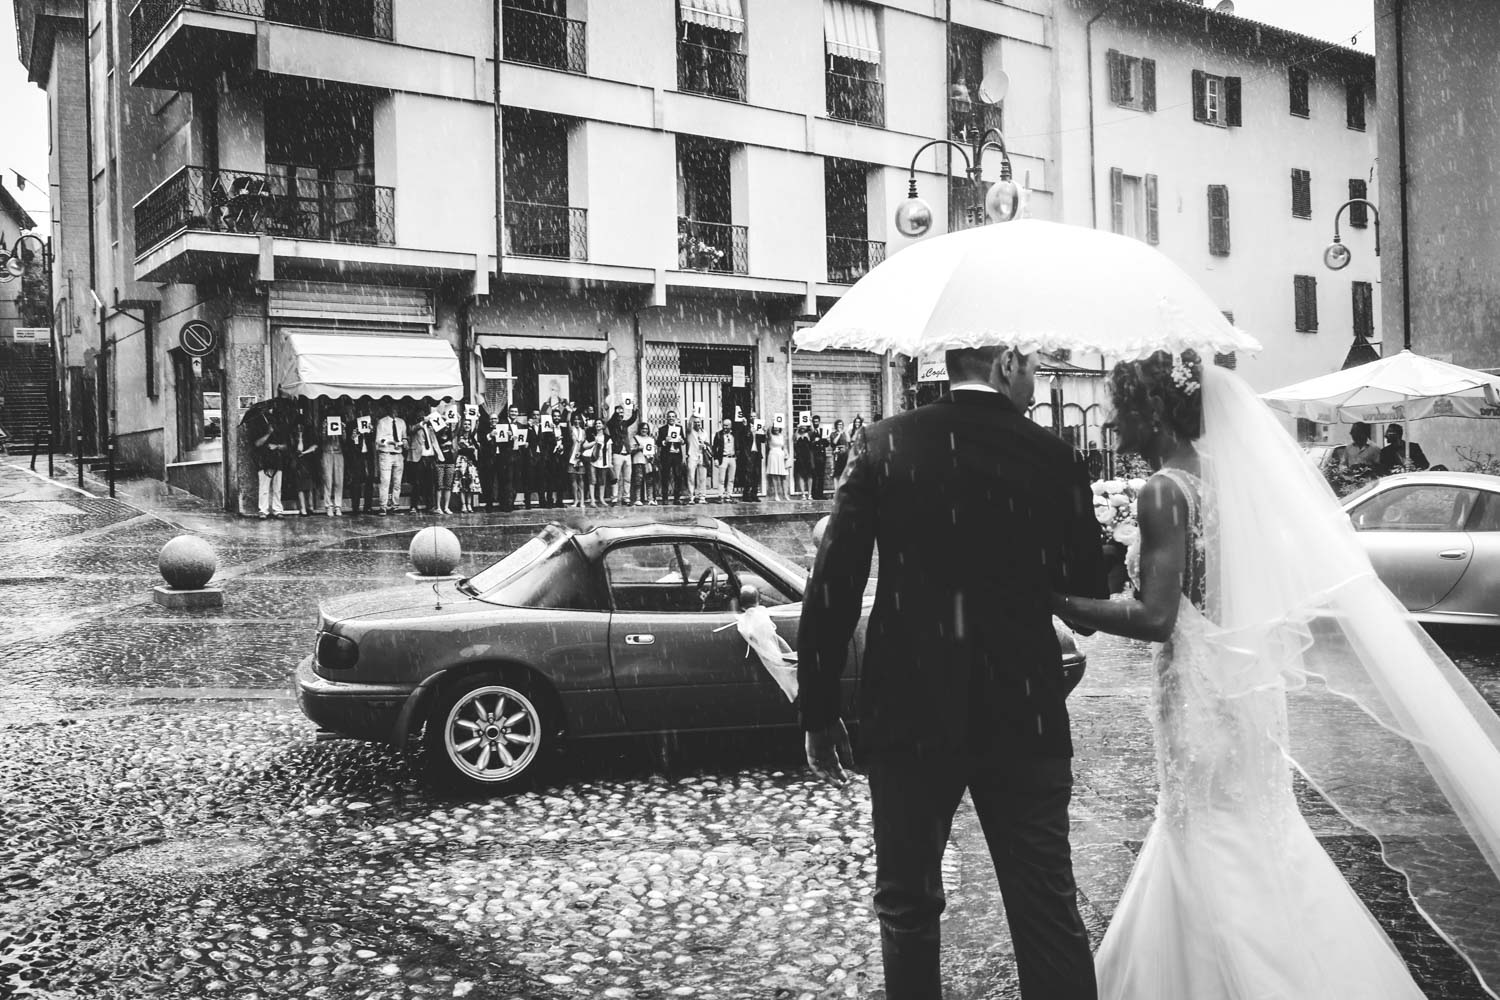 40monica sica_art foto_fotografo matrimonio_torino_ristorante_location_wedding_villa bodo_moncrivello040_ART_2278